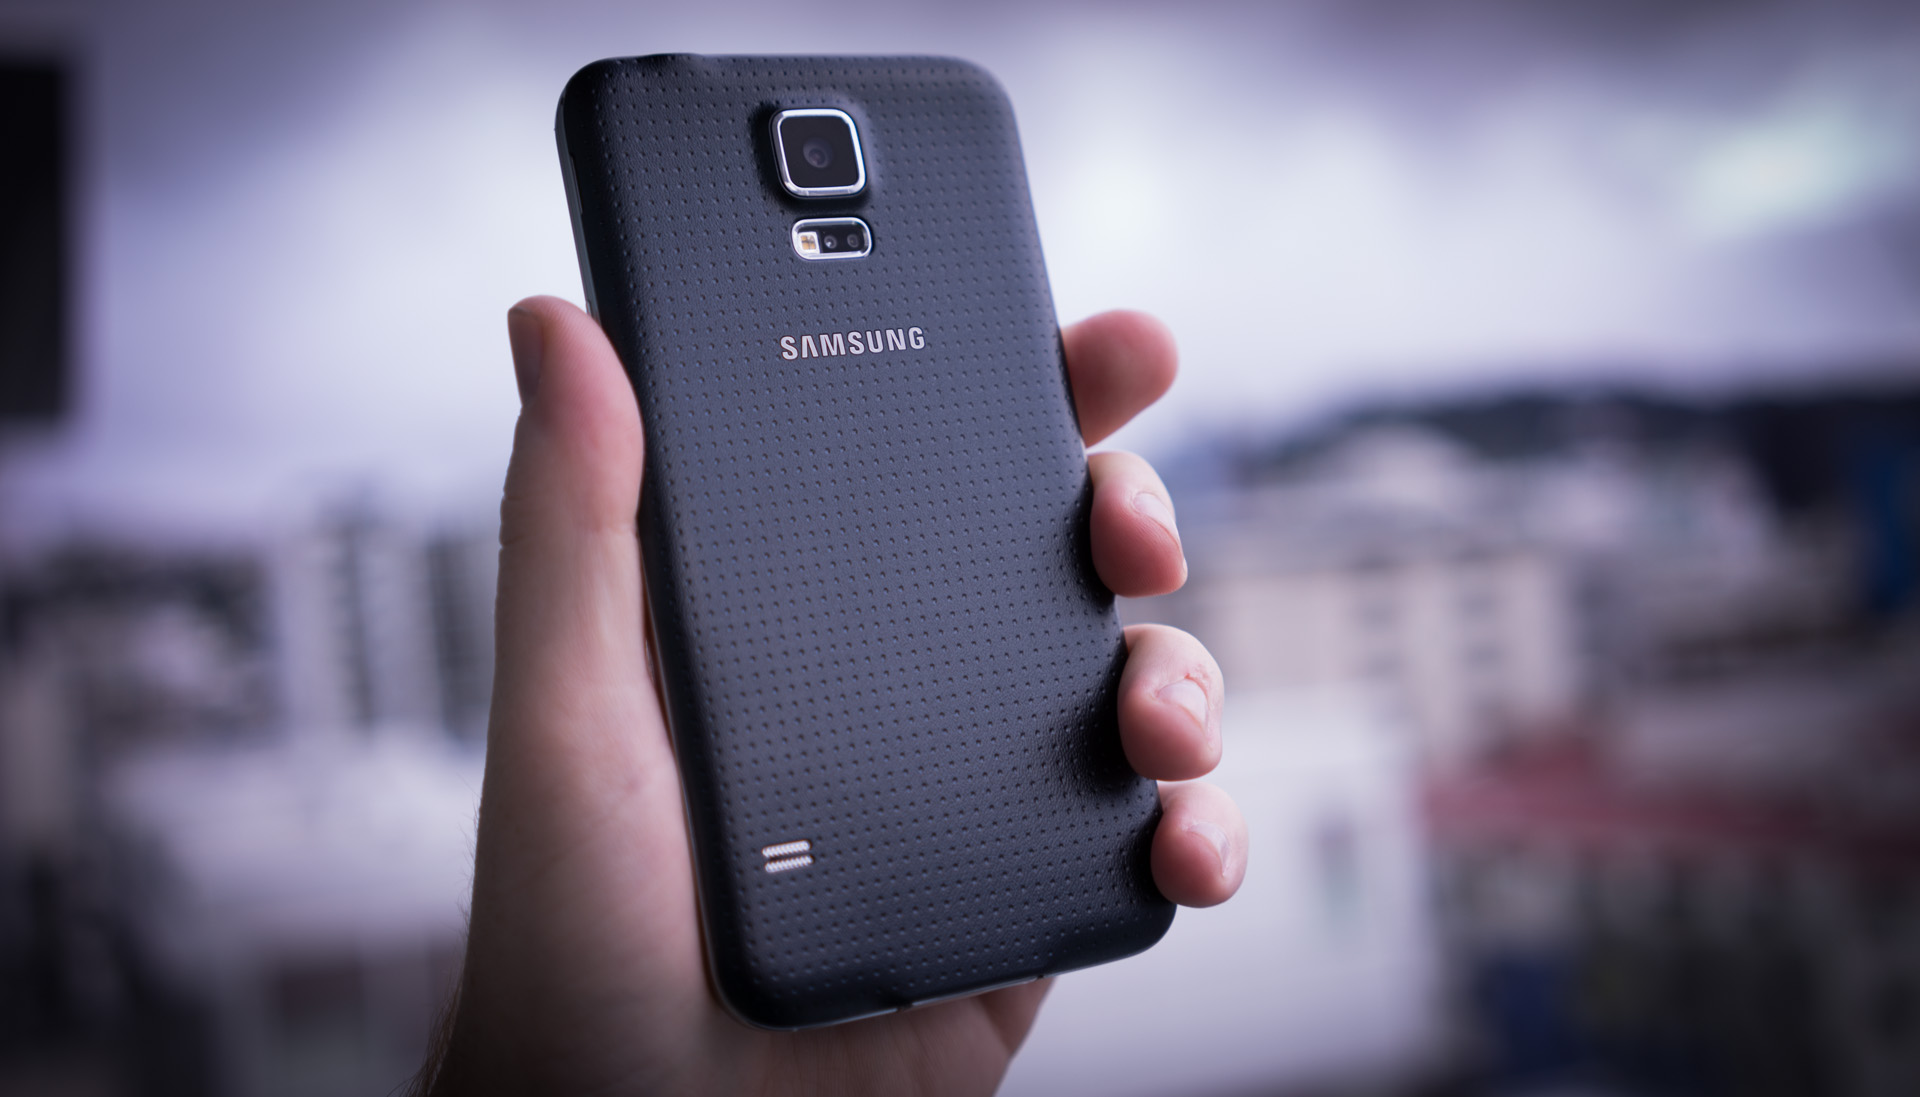 DSC07355 Samsung Galaxy S5 review: Incremental is the new cool